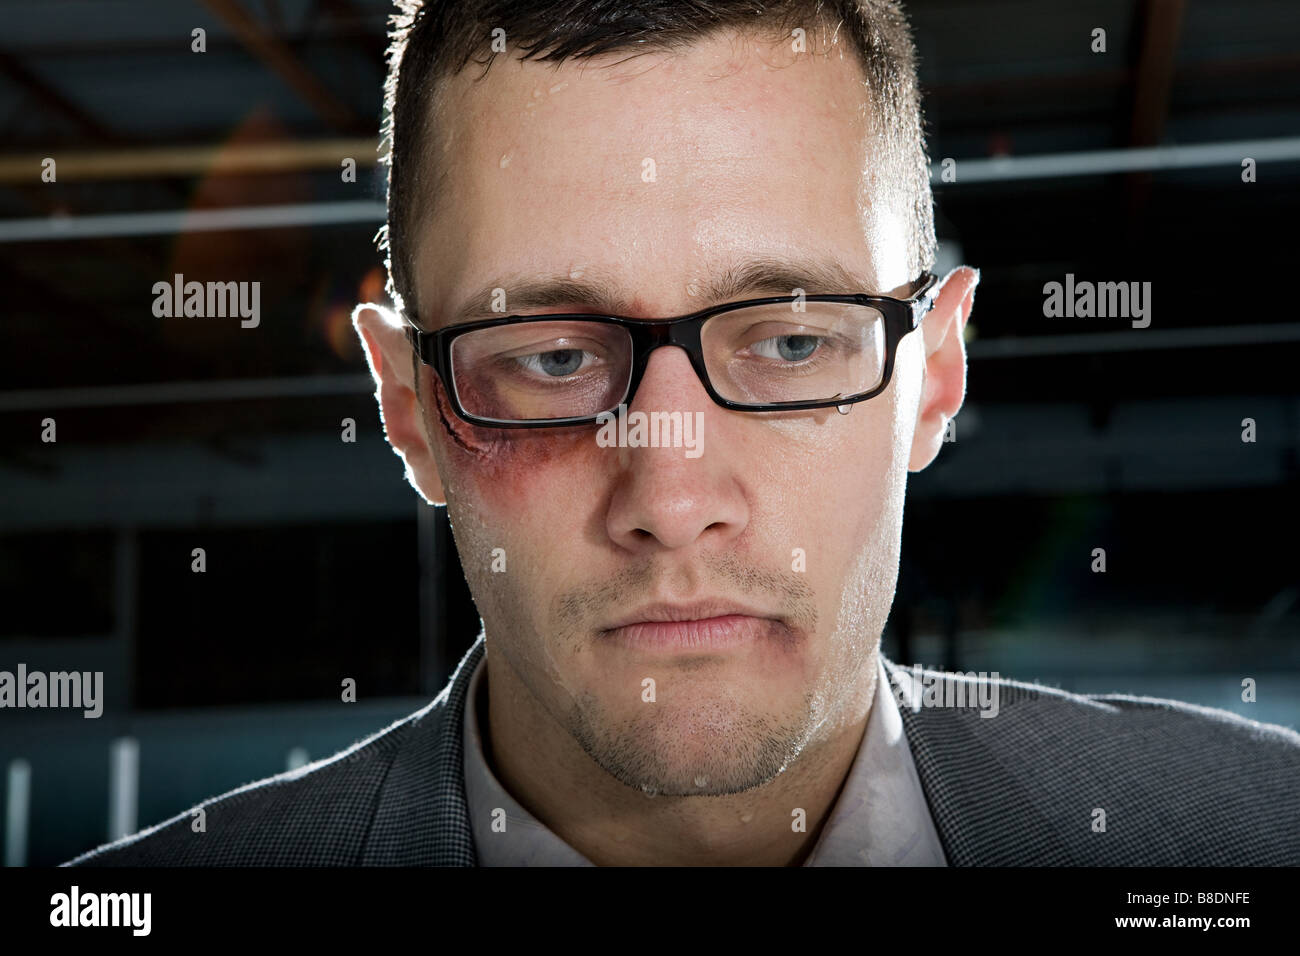 Businessman with a bruised eye - Stock Image